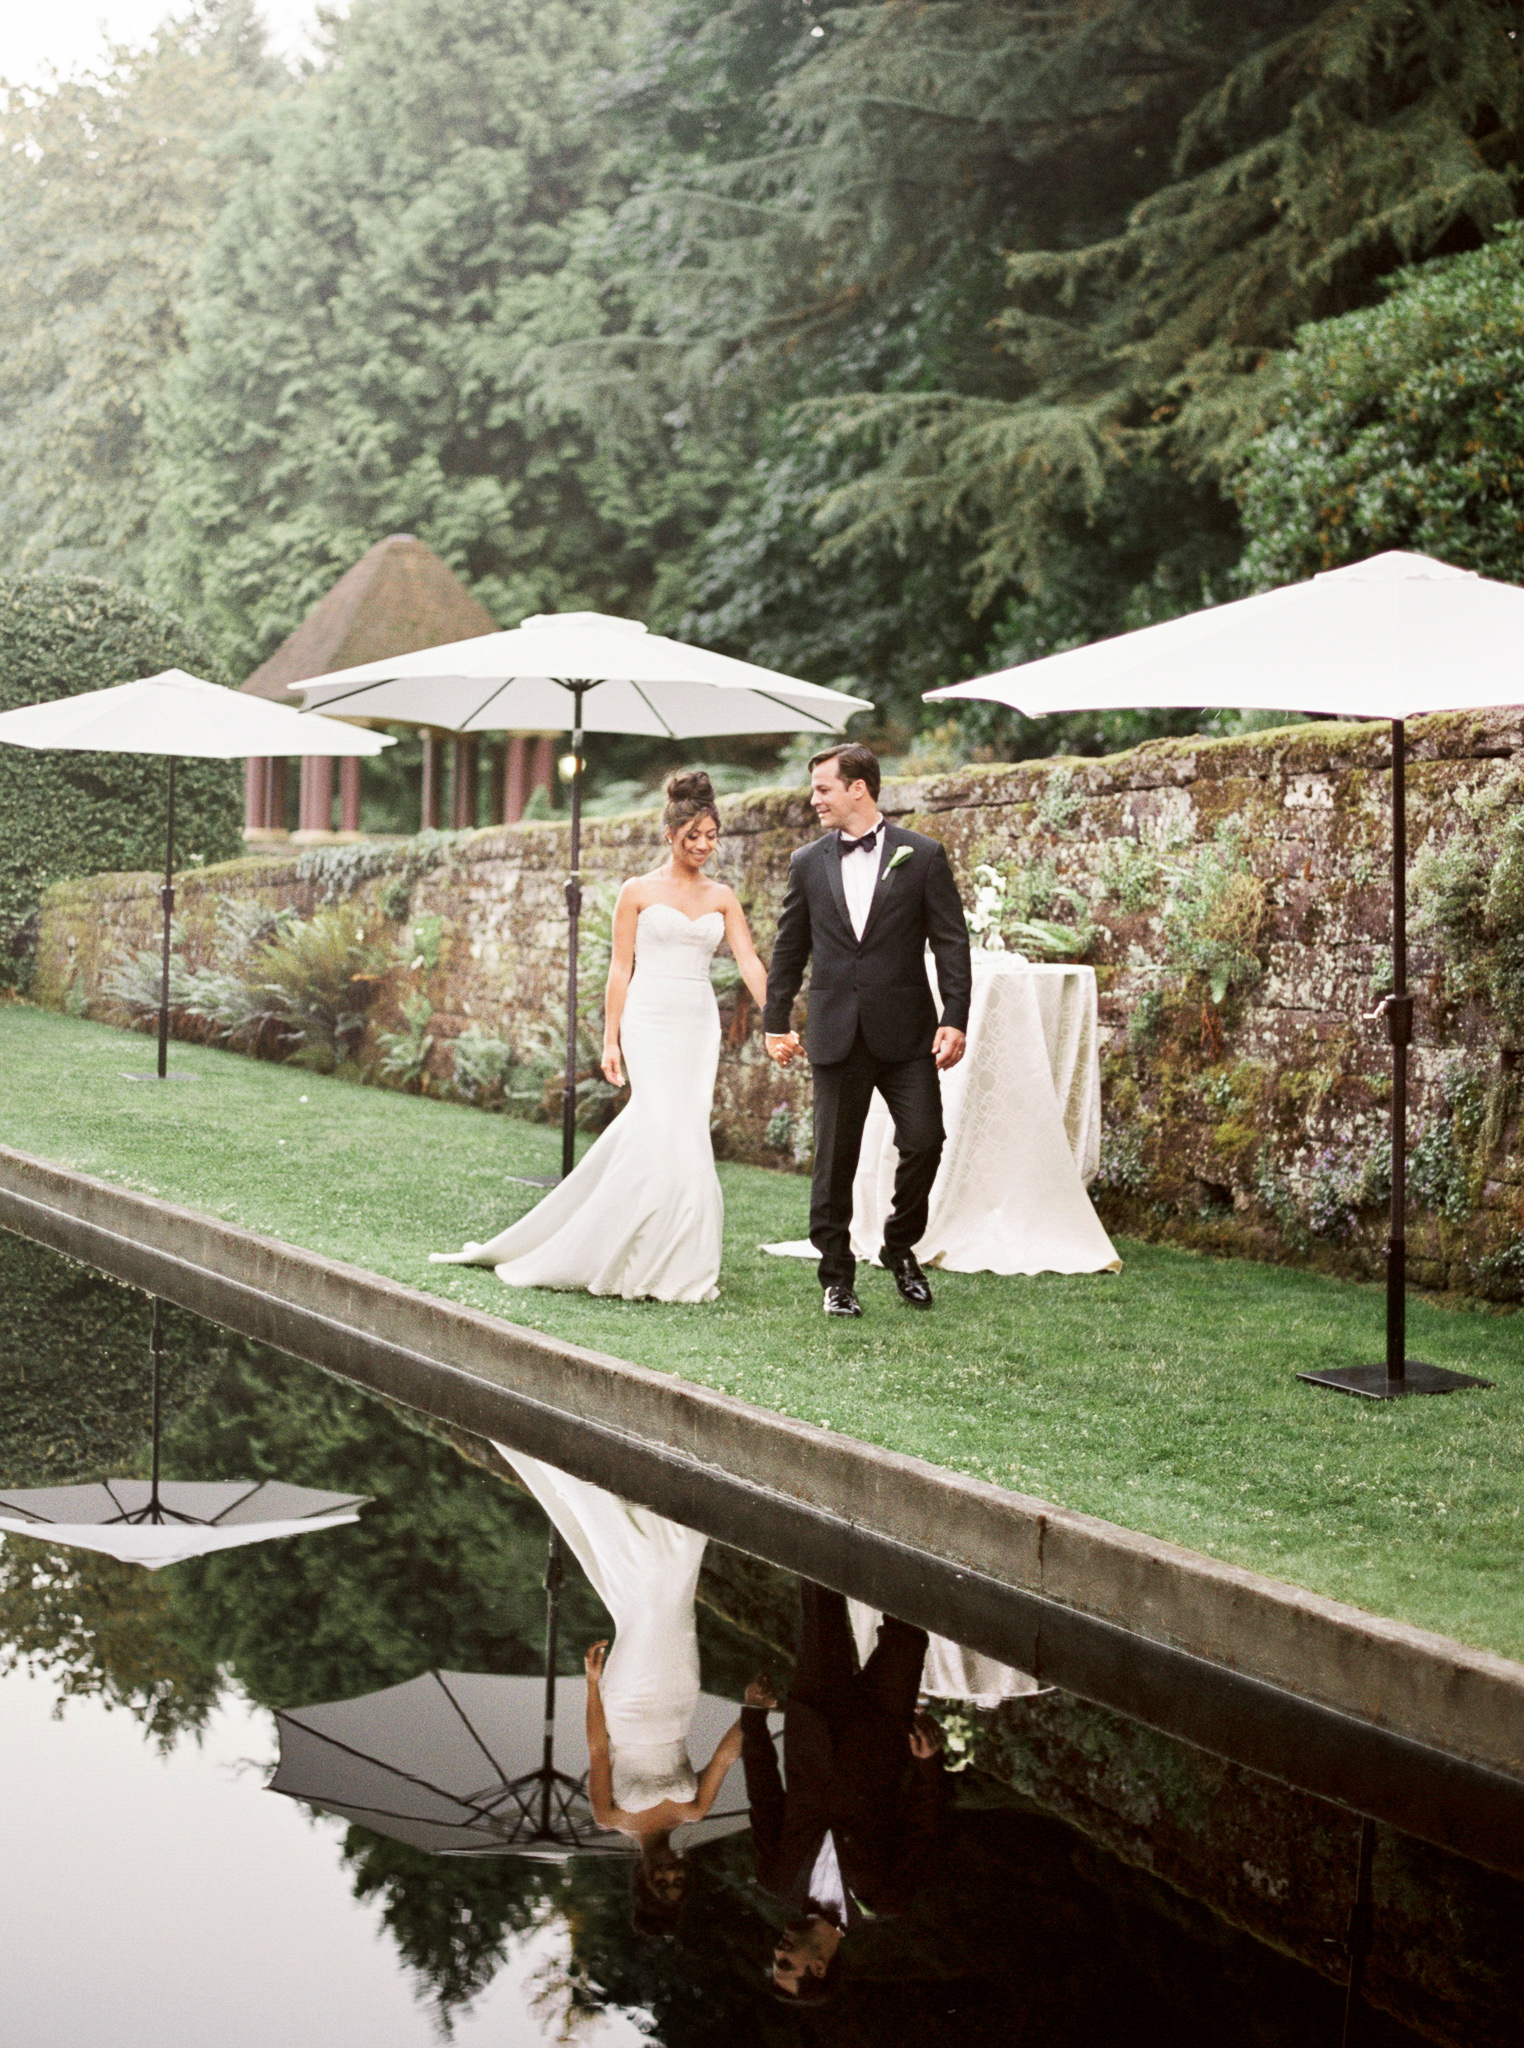 084OutliveCreative_Travel_Photographer_Videographer_Lewis&Clark_Oregon_Elegant_BlackTie_Destination_Wedding.jpg